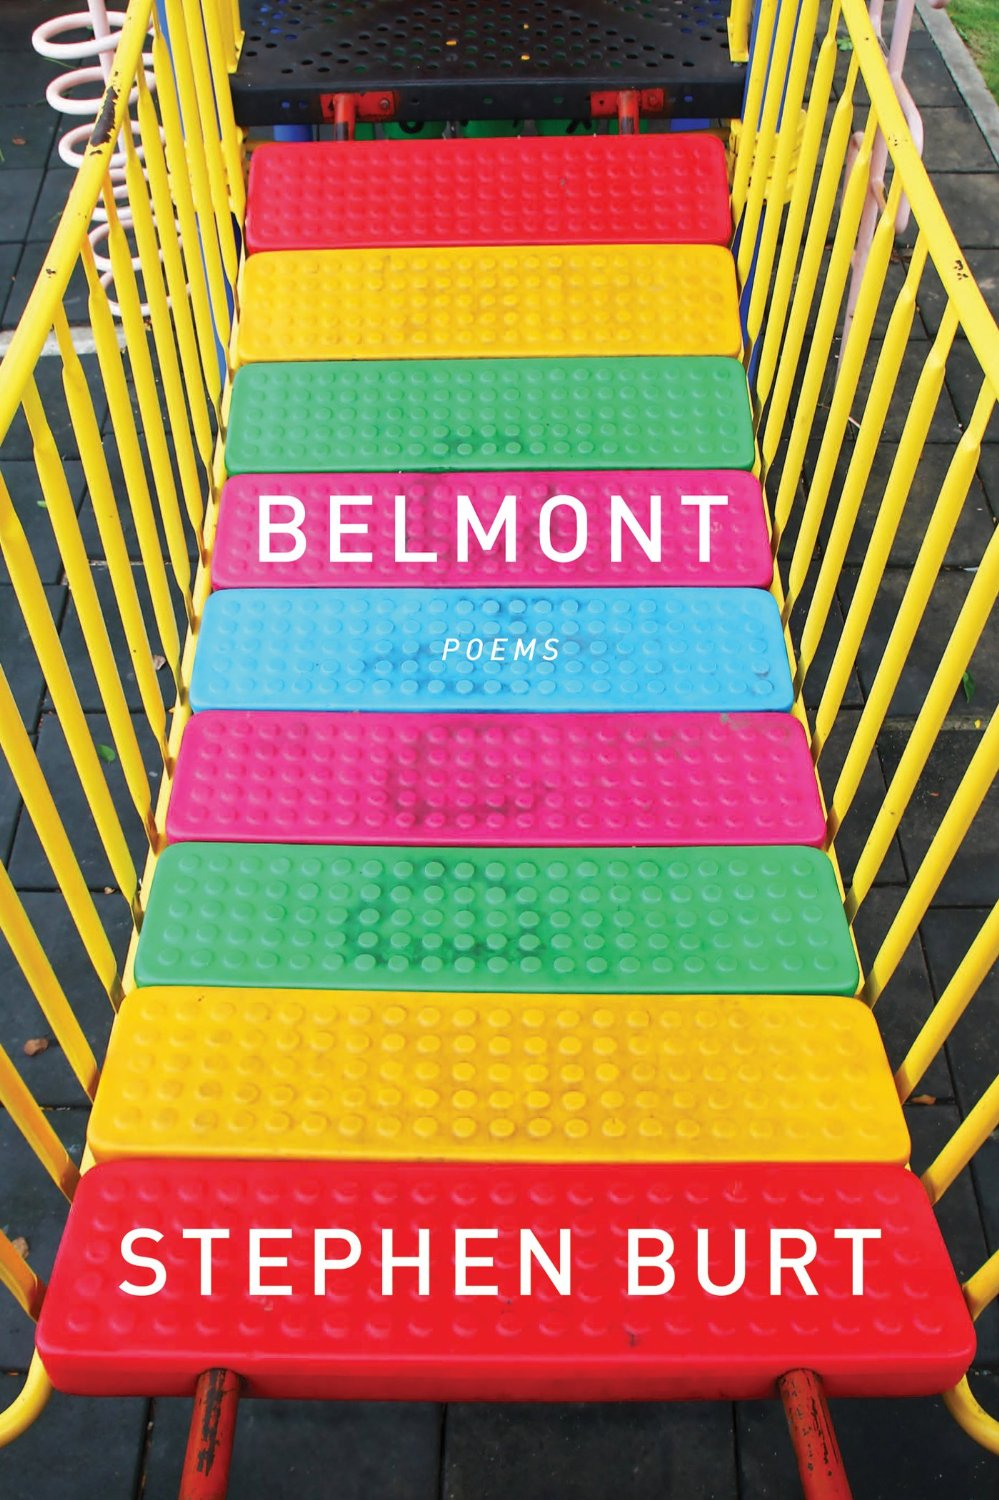 Rumpus review of Belmont